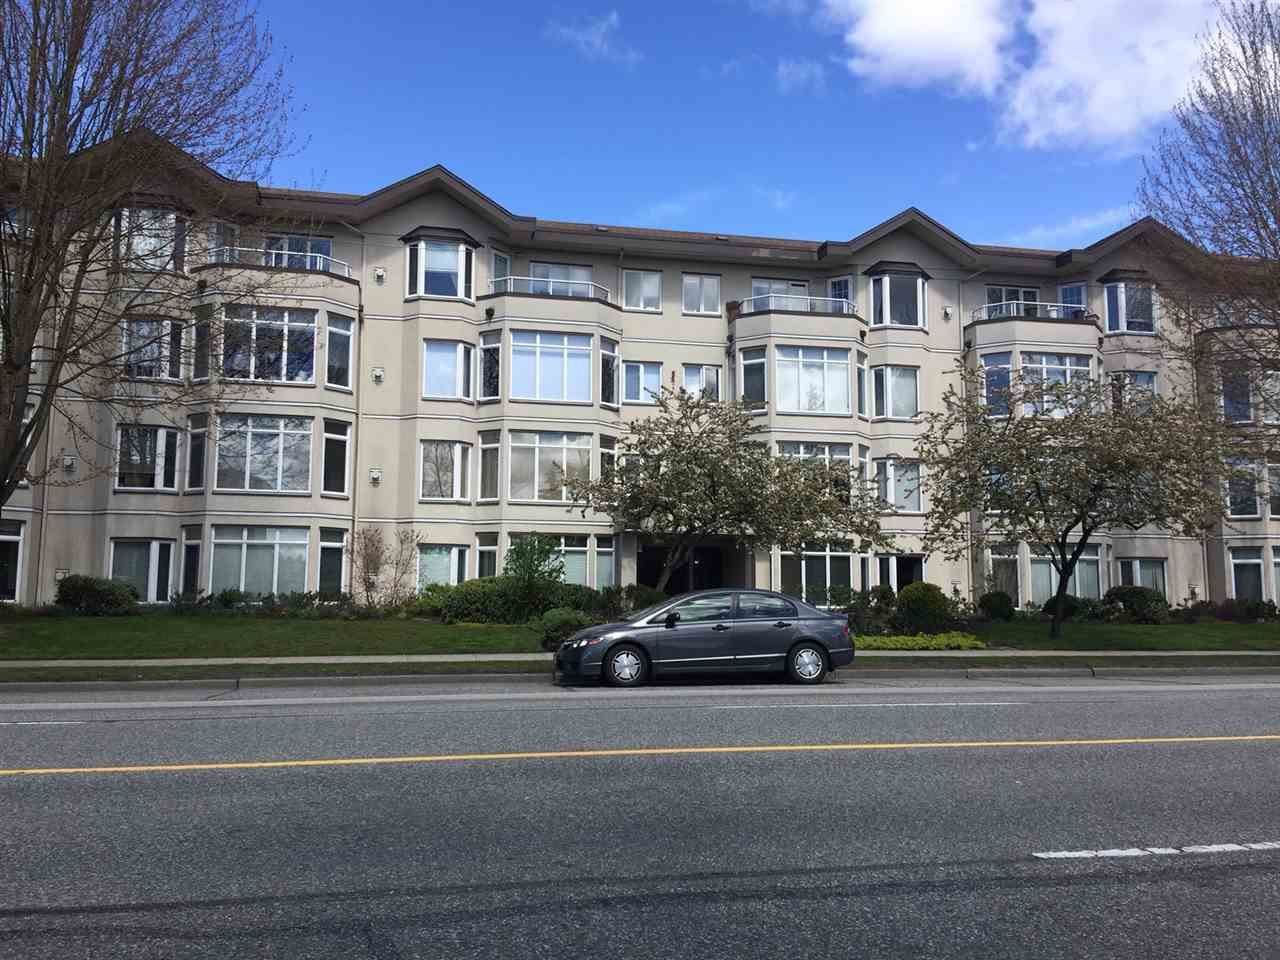 Main Photo: 108 2677 E BROADWAY in Vancouver: Renfrew VE Condo for sale (Vancouver East)  : MLS®# R2272296